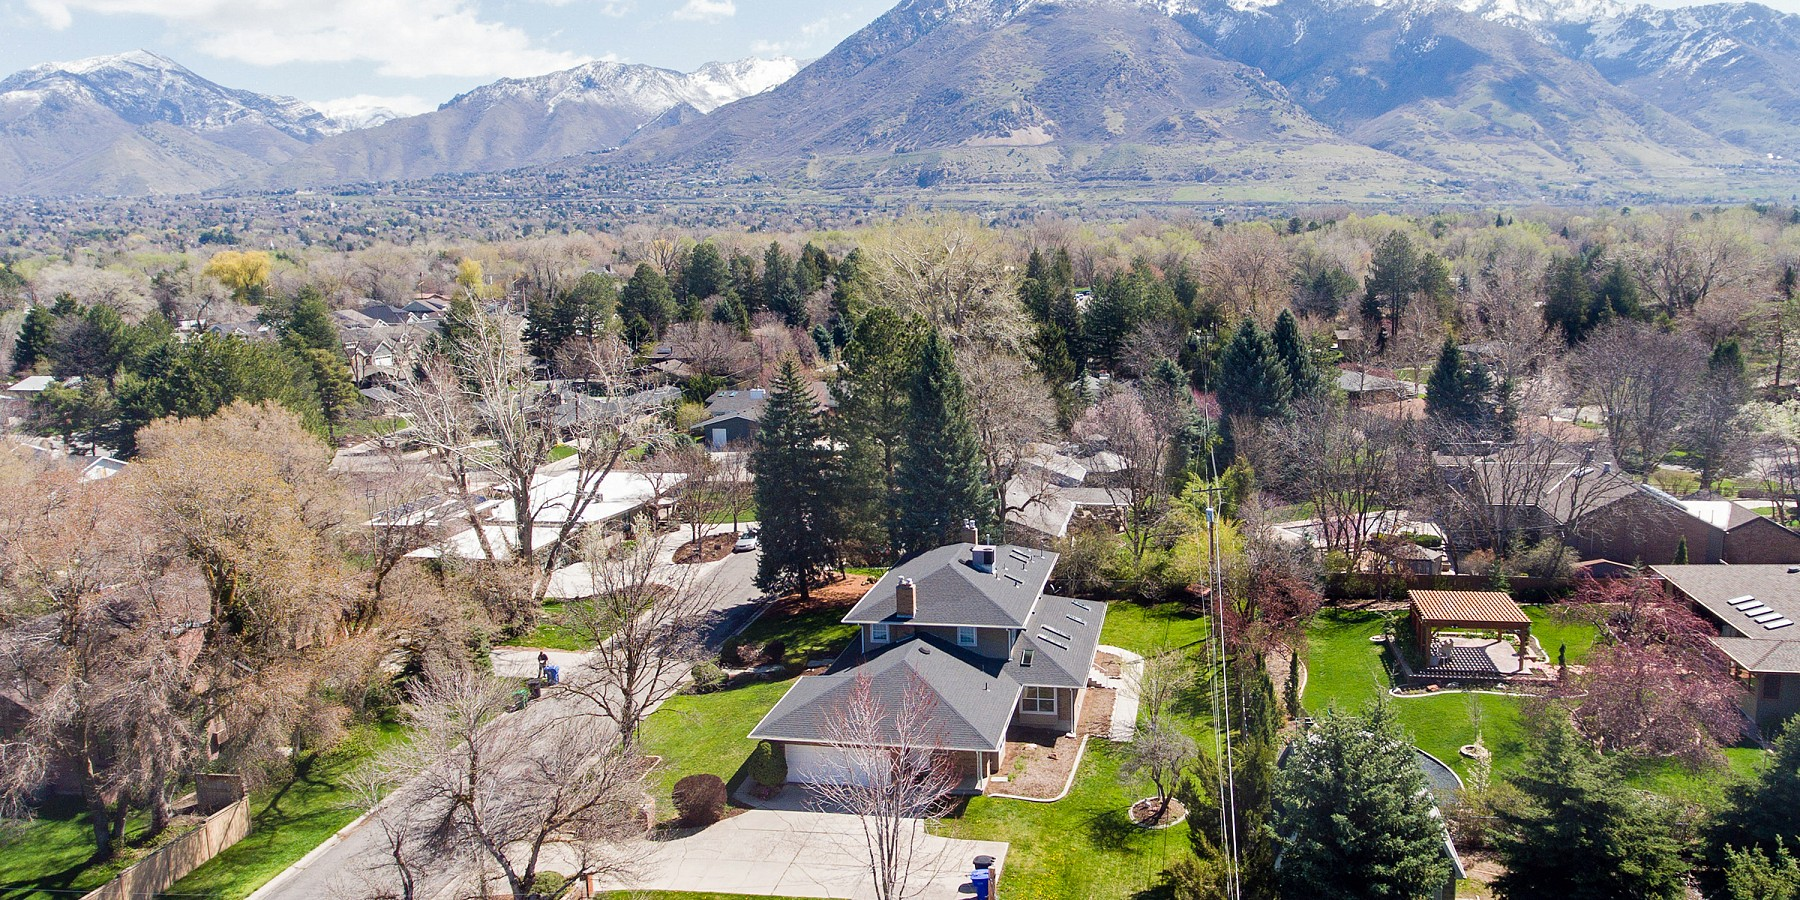 1856 E. Baywood Drive, Holladay, UT 84117